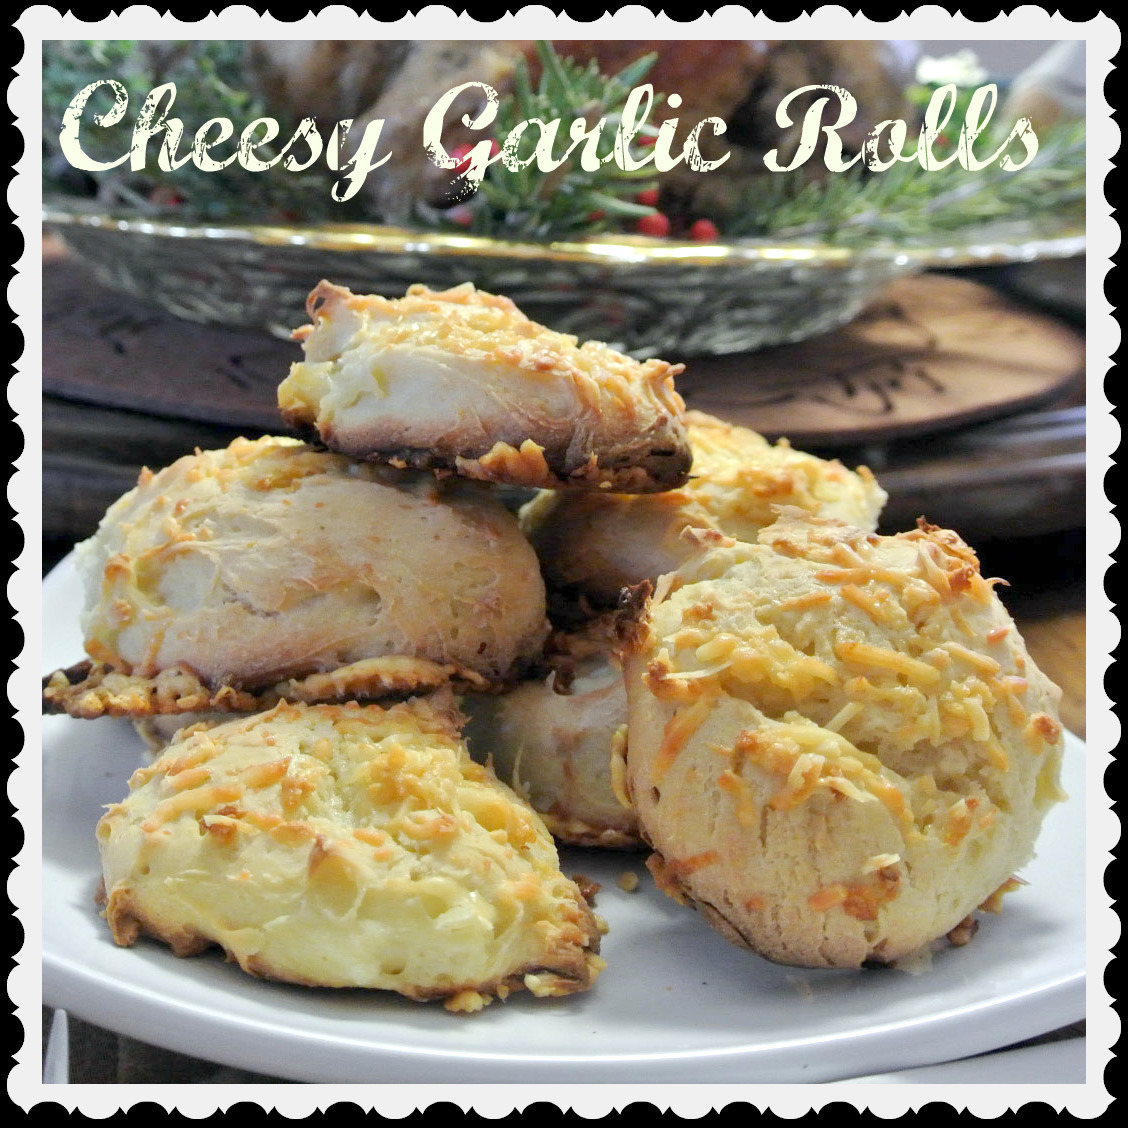 Gluten-Free Cheesy Garlic Rolls